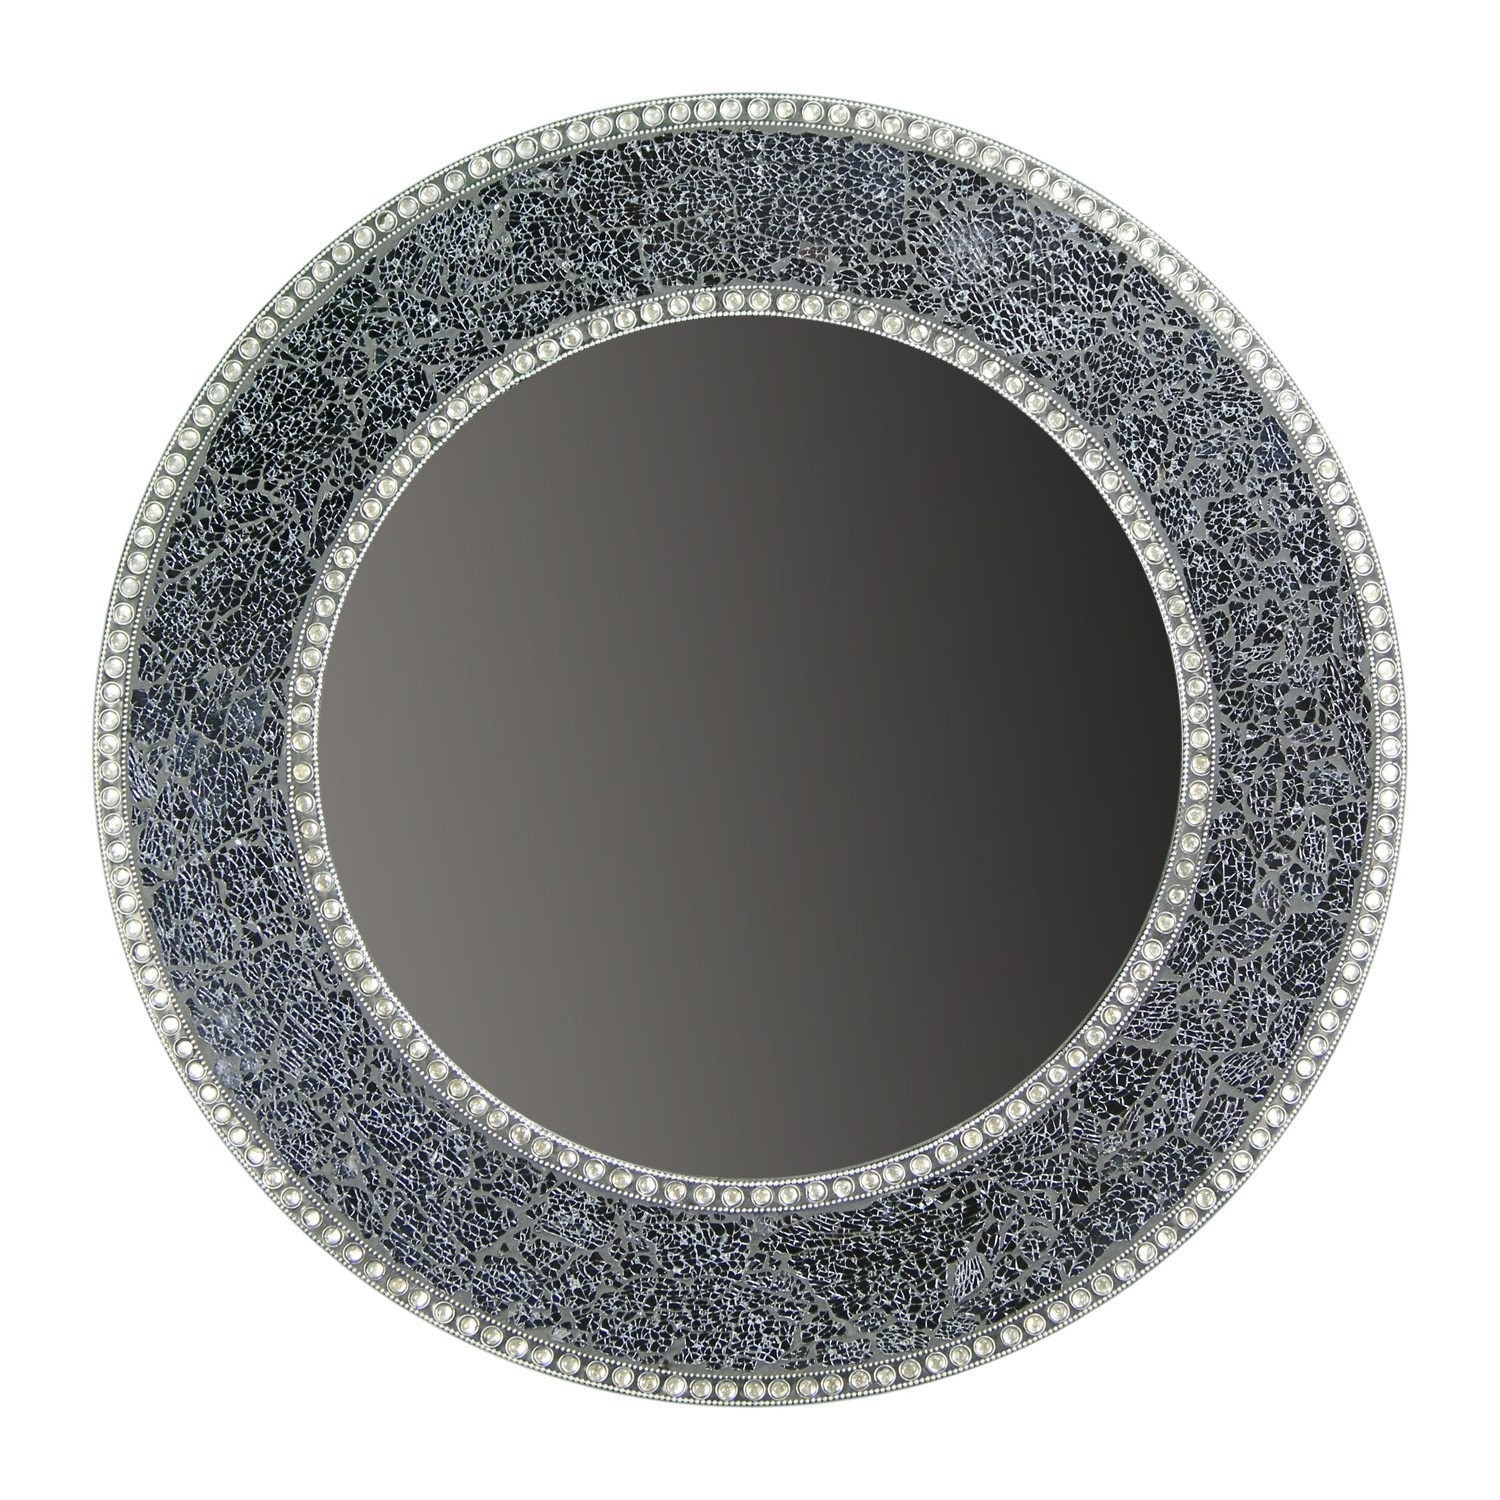 Buy 24 Black And Silver Crackled Glass Mosaic Wall Mirror Online With Black Mosaic Mirror (Image 3 of 15)